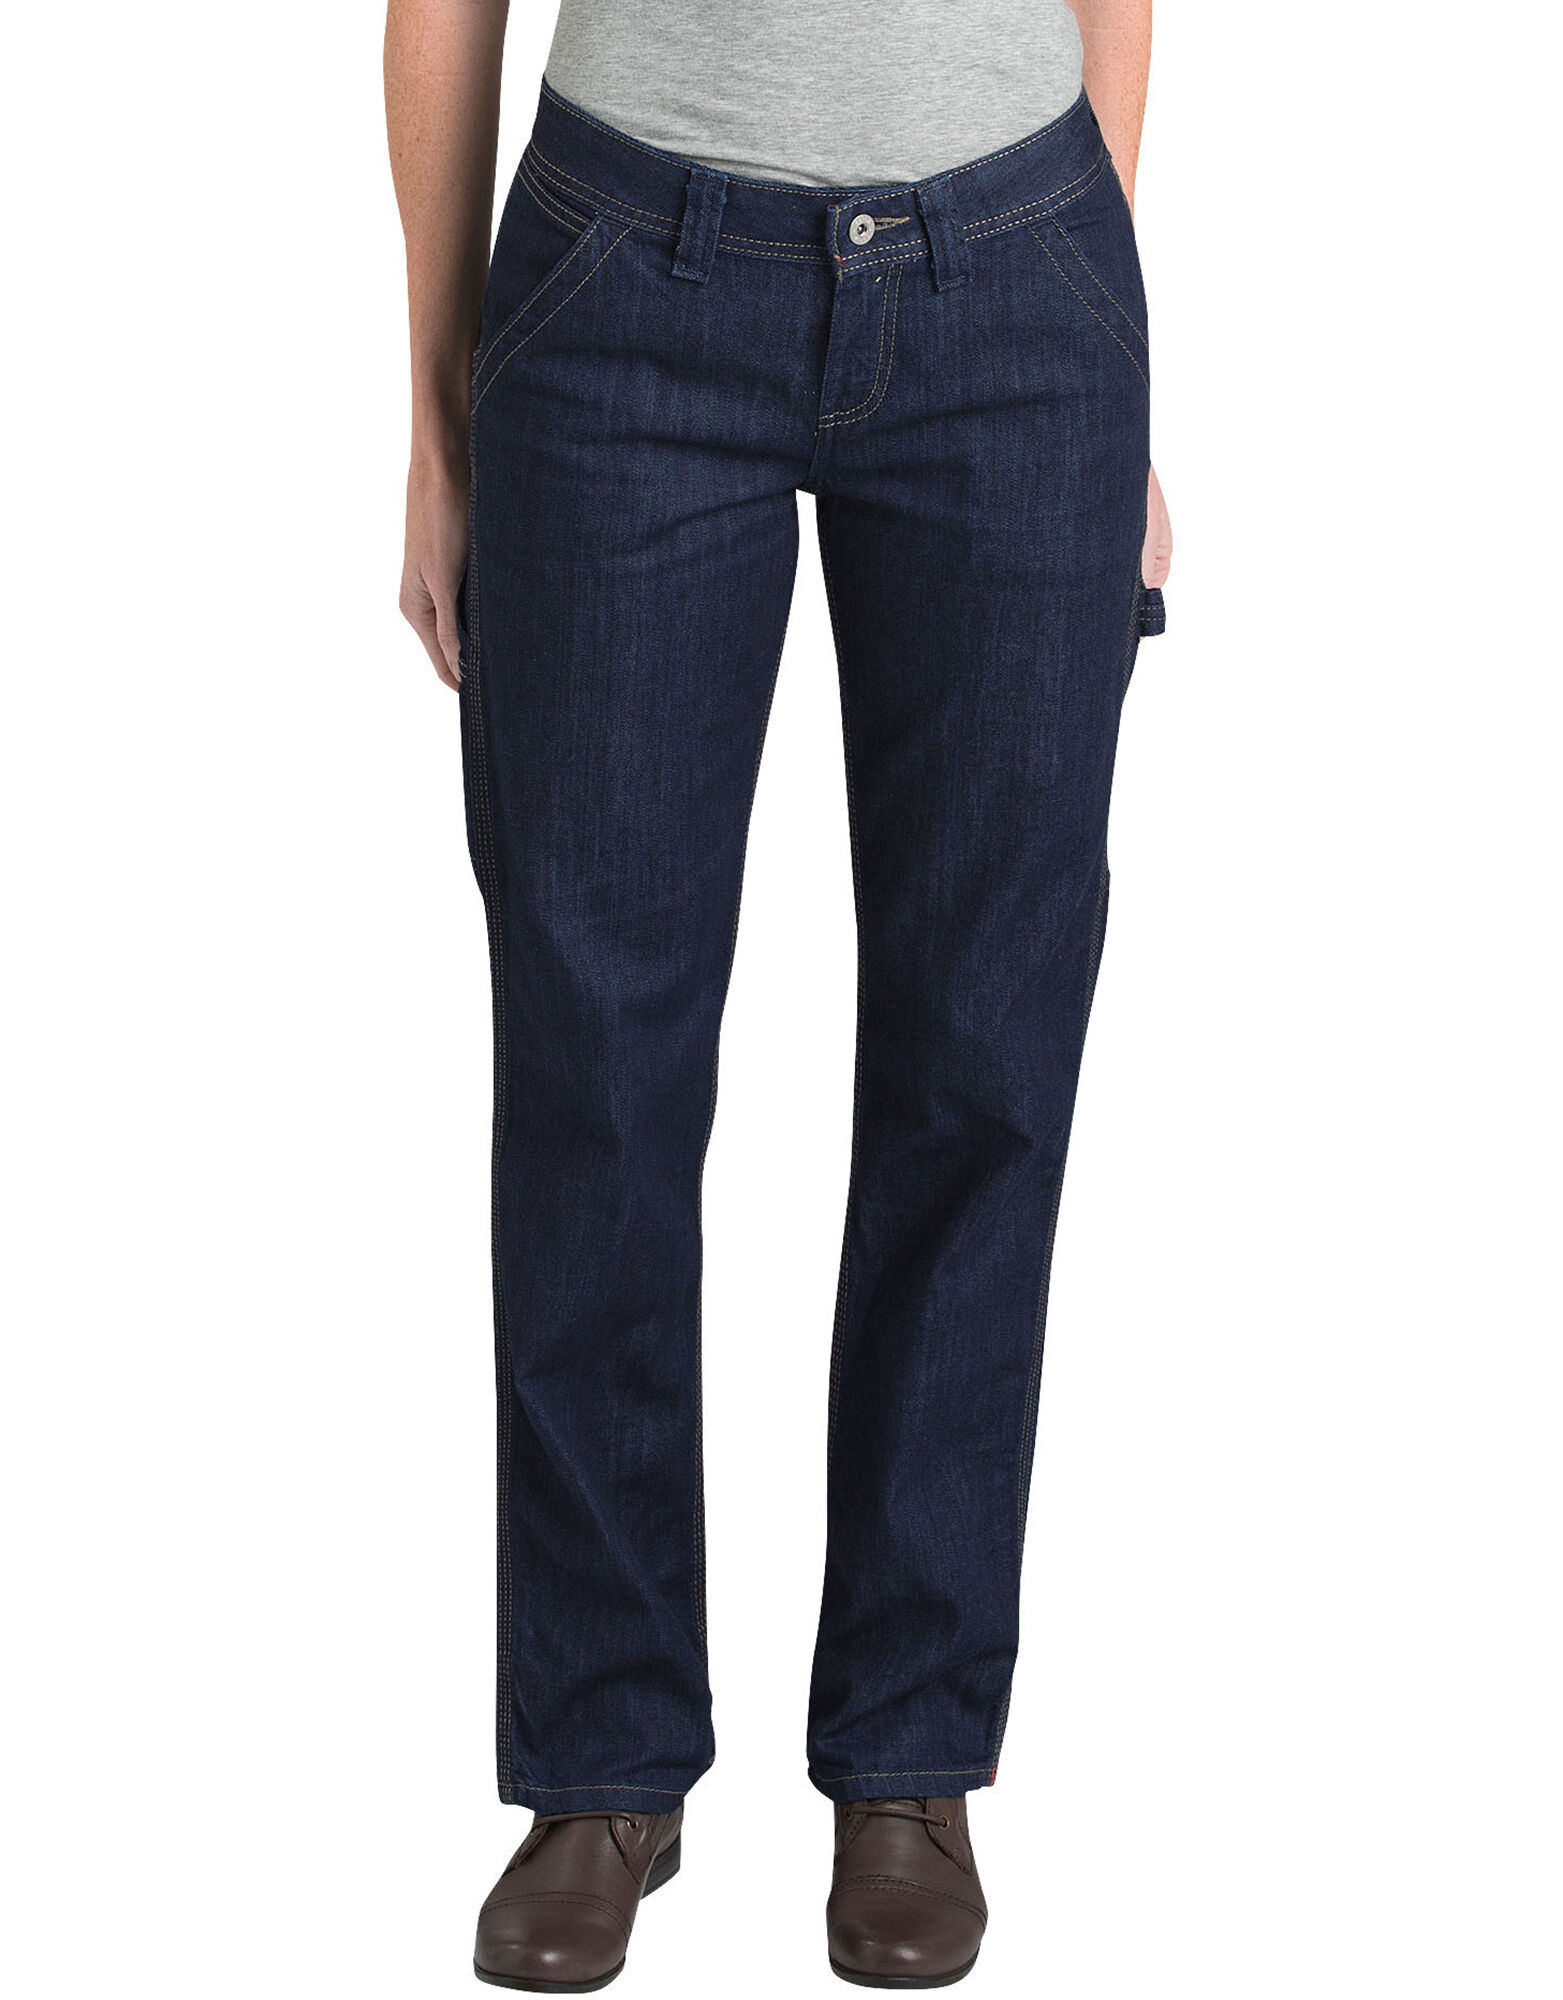 Womens Carpenter Jeans Cfetma2s